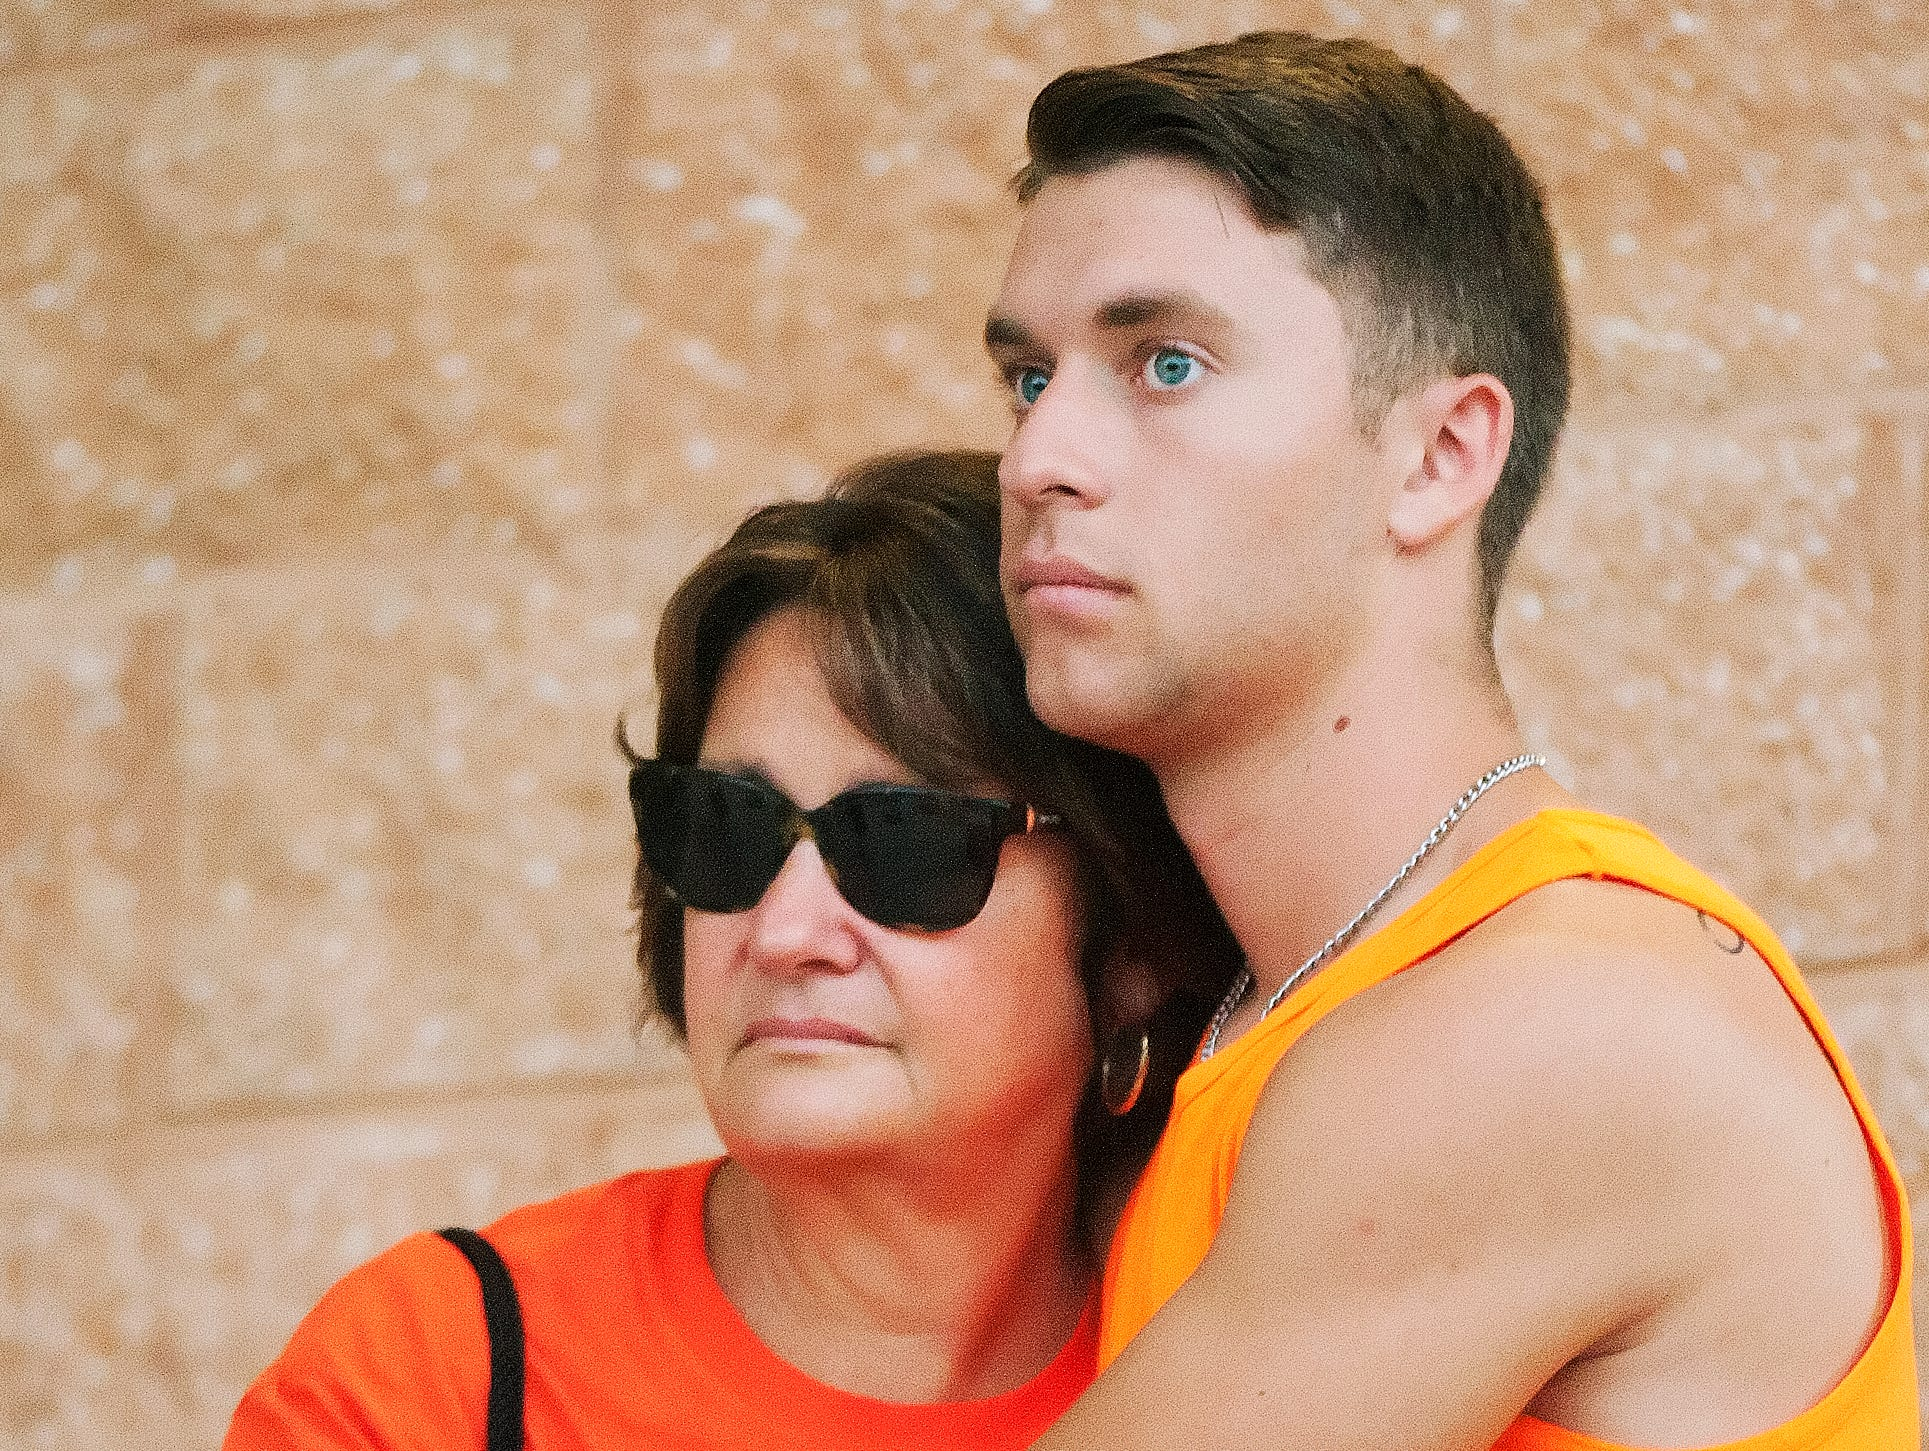 Susan Sommer, wife of the late Jeff Sommer and their son Adam Sommer attend the Estero DDD Invitational at Estero Community Park.